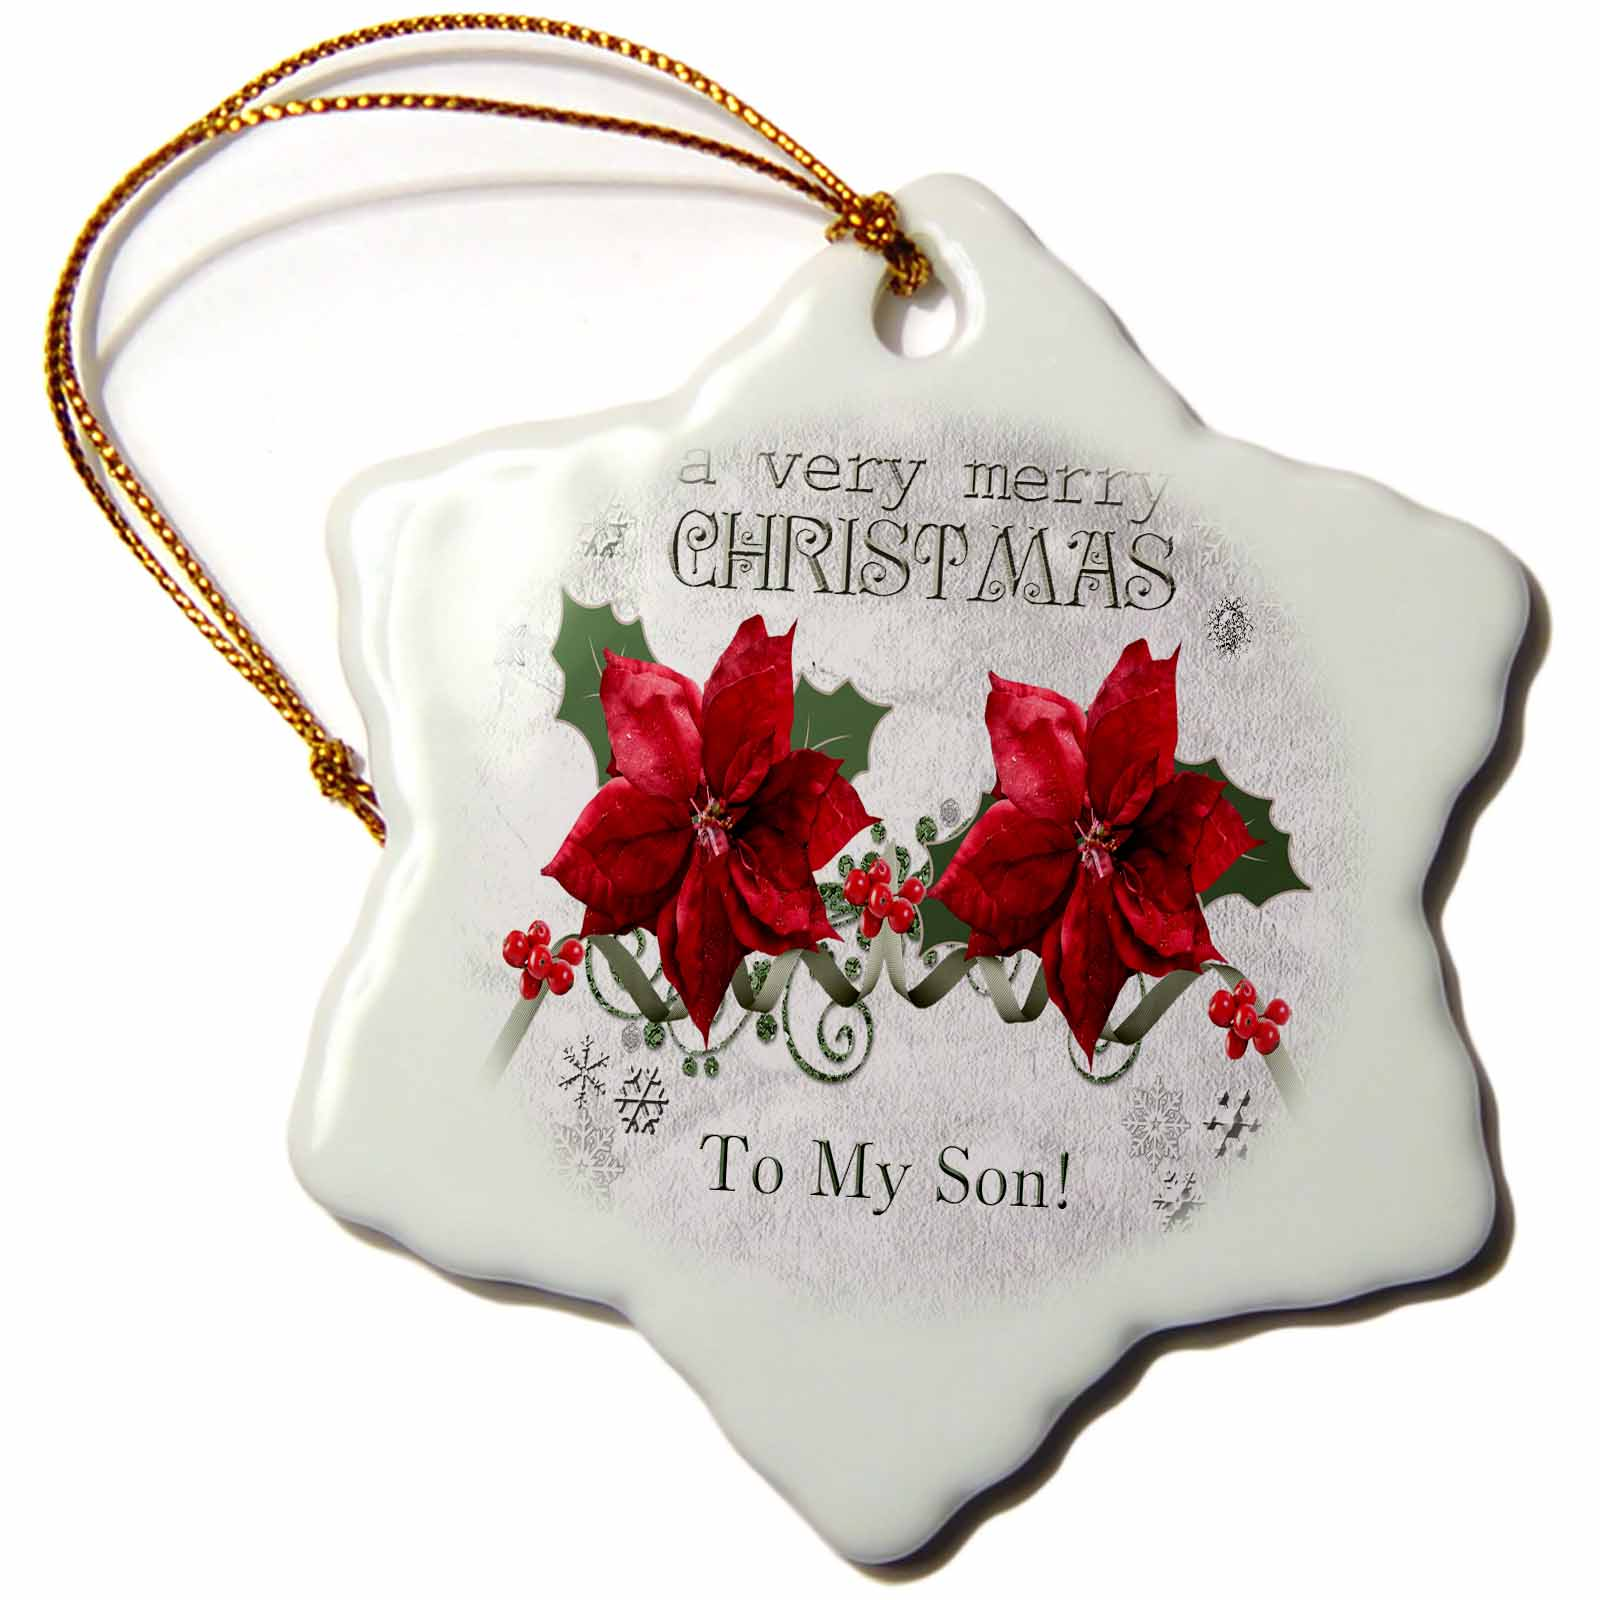 3dRose Berries and Poinsettias, a very merry Christmas, To My Son, Snowflake Ornament, Porcelain, 3-inch